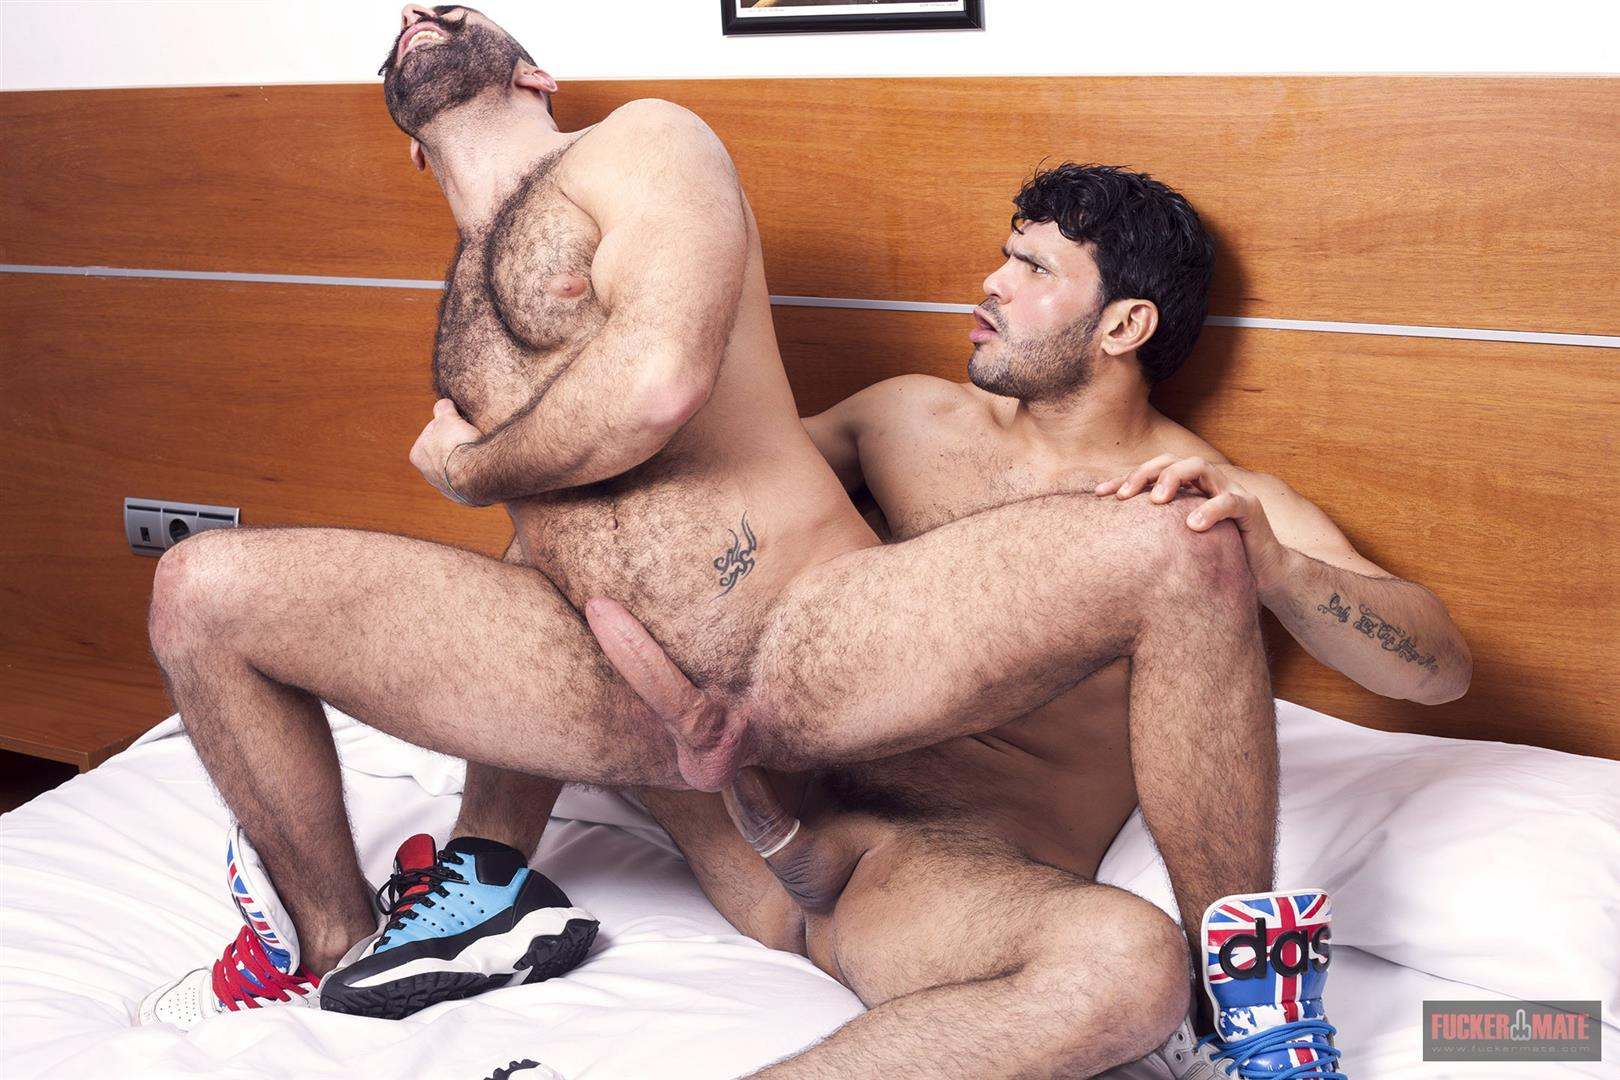 Love horny guy sticking toy in his brown eye looking for someone who